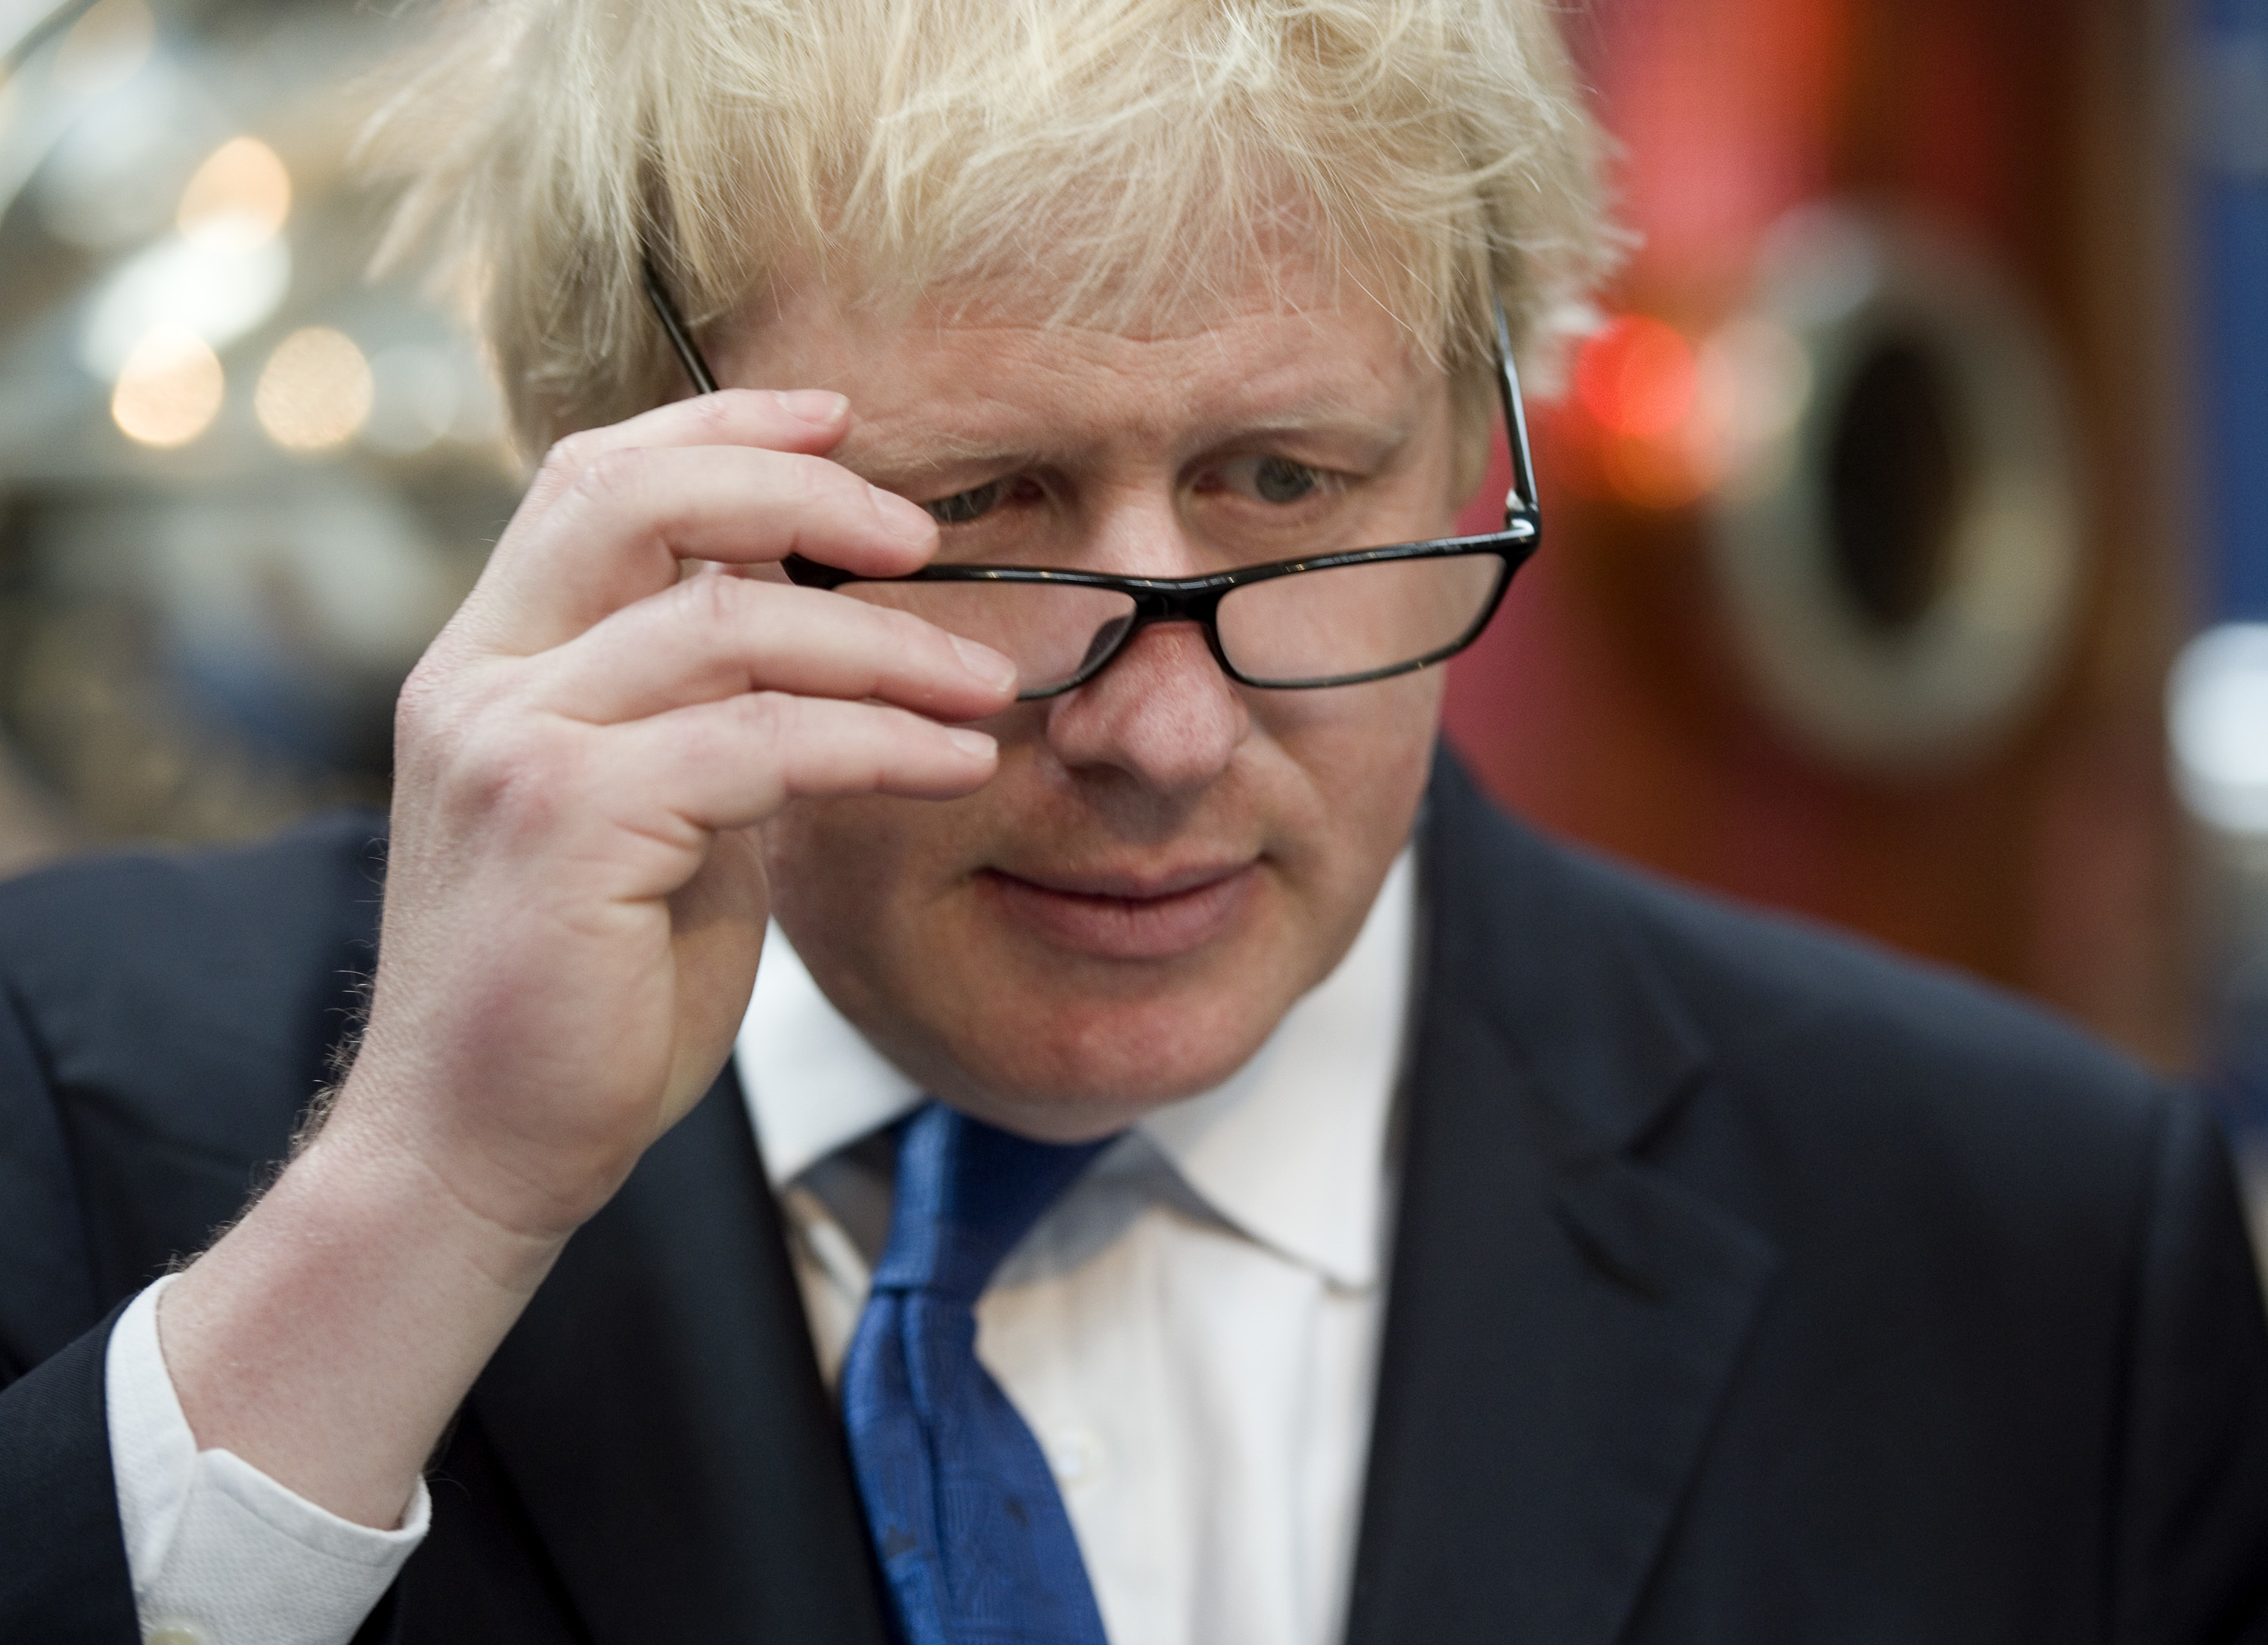 Mayor of London Boris Johnson visits Sipsmith's Gin distillery in Chiswick, London, the first copper distillery in the capital for 200 years. PRESS ASSOCIATION Photo. Picture date: Friday April 17, 2015. Mr Johnson has not ruled out becoming a minister in the first year of a Tory government but said David Cameron would not be in favour of such a move. Mr Johnson insisted he could not see how a ministerial position would be compatible with his job as Mayor of London, which will end in May 2016. After that the road would be clear for Mr Johnson to be promoted to government if the Tories form it and he becomes MP for Uxbridge and South Ruislip. But Mr Johnson stressed that his current mayoral position was like running a big budget government department already. See PA story ELECTION Boris. Photo credit should read: Anthony Devlin/PA Wire